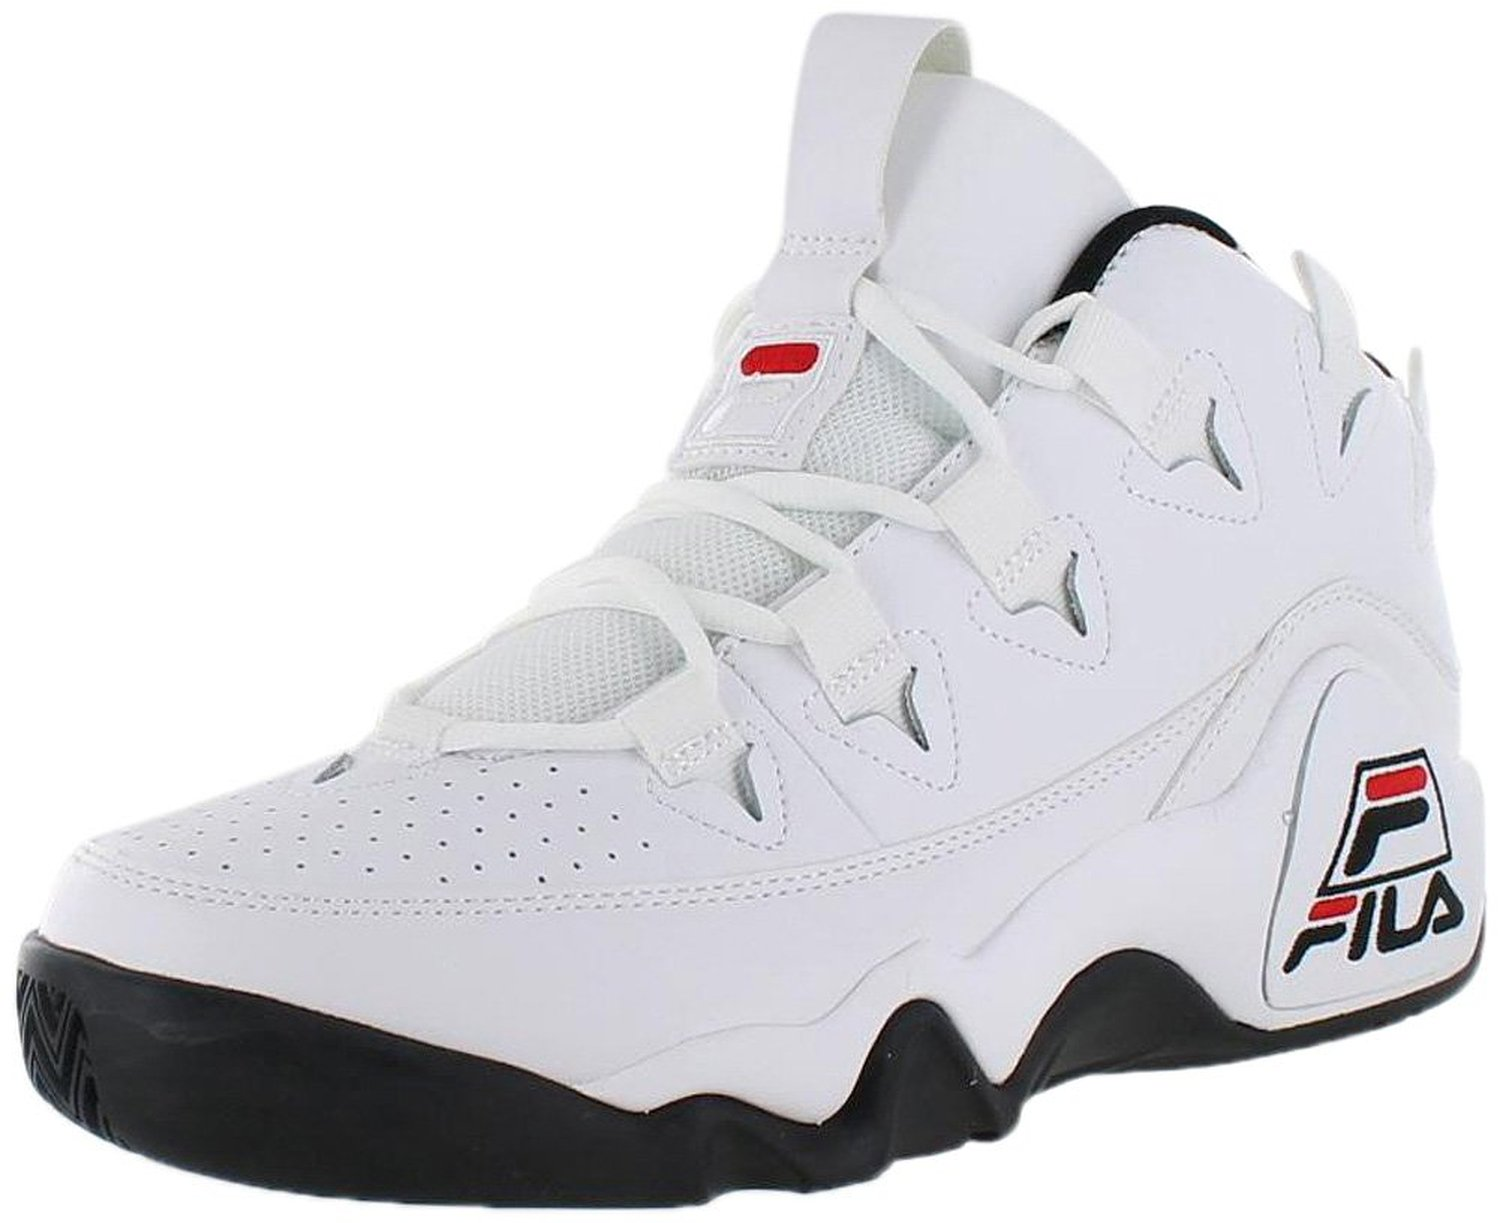 Fila The 95 Grant Hill Men's Retro Basketball Shoes Sneakers